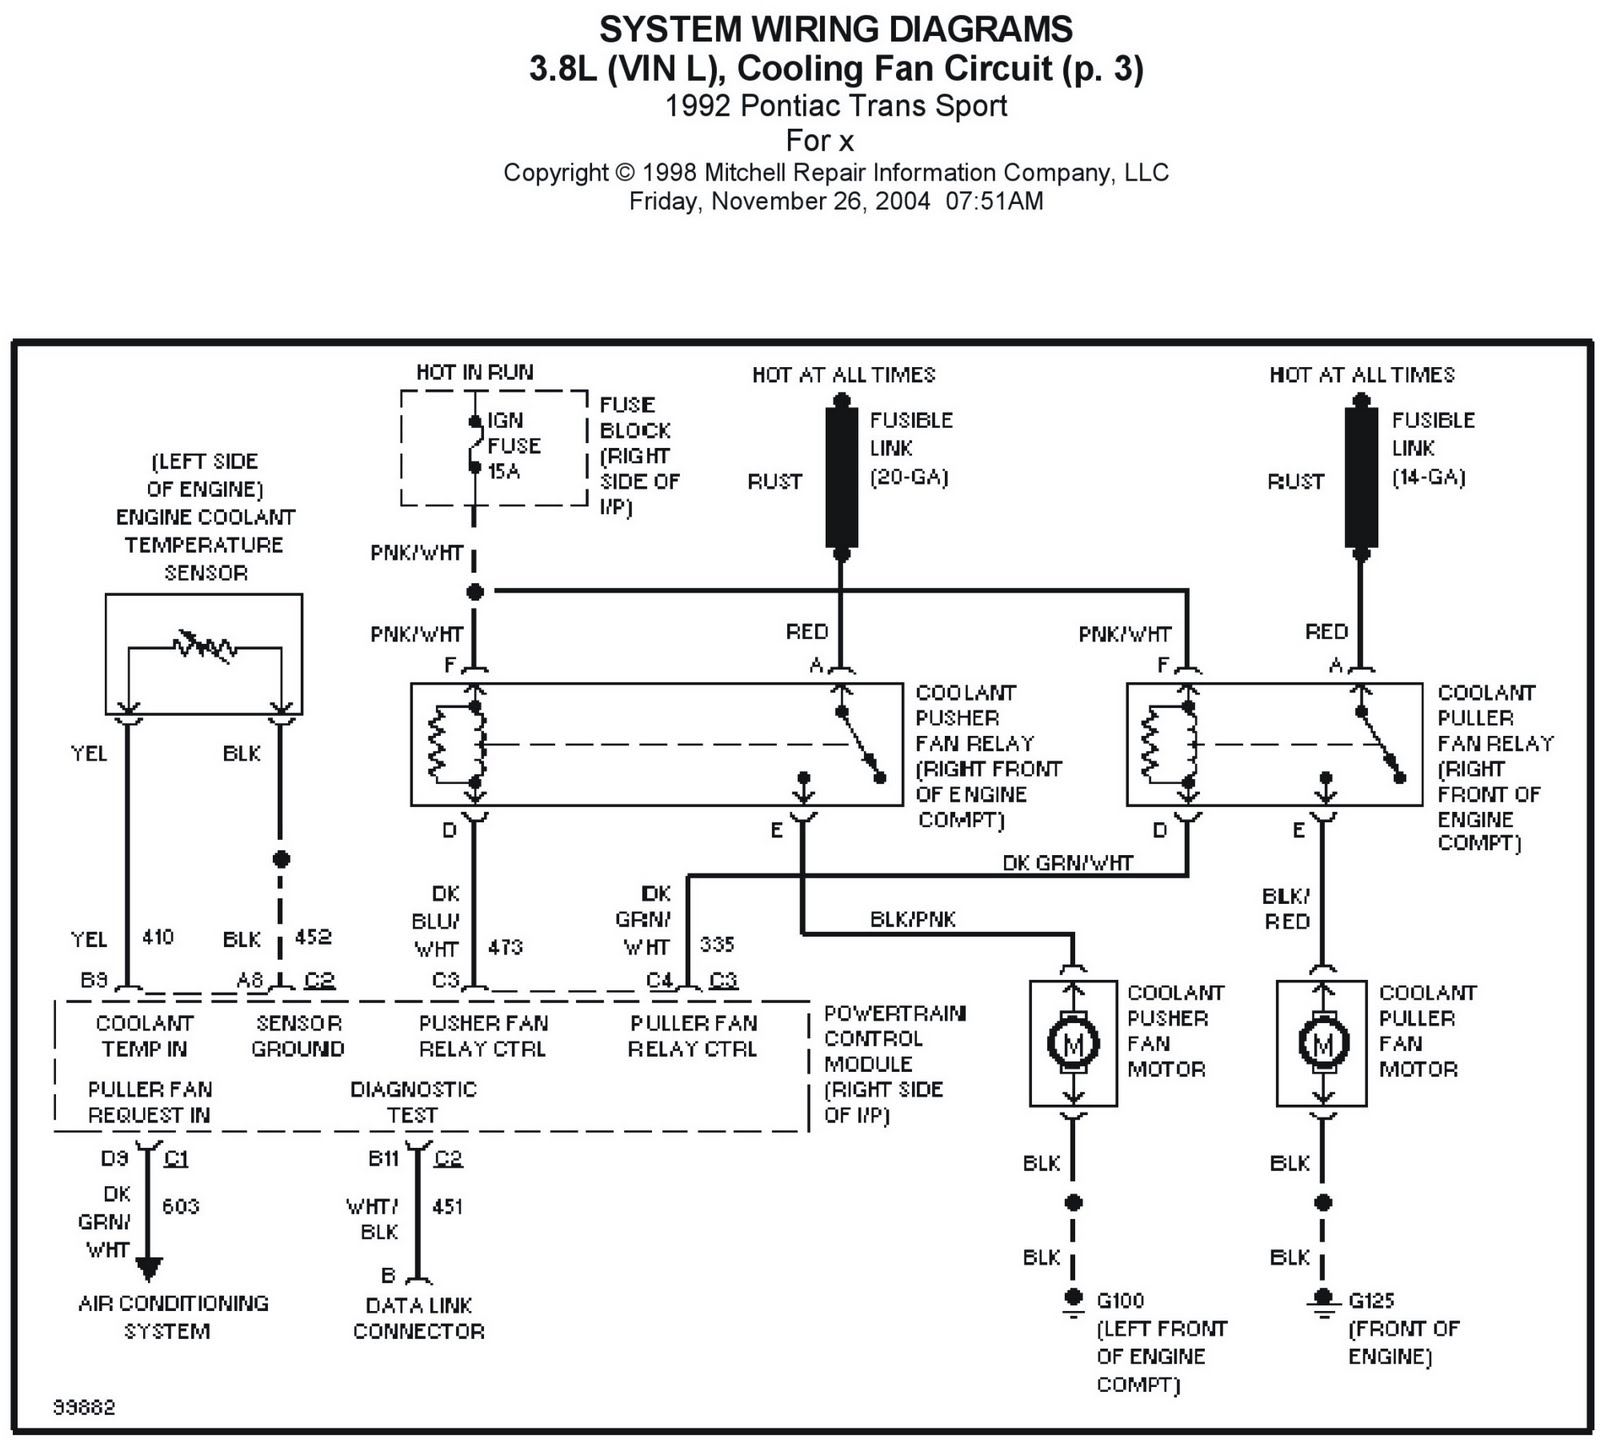 1997 pontiac firebird engine diagram wiring diagram sheet 1997 pontiac trans am engine wiring diagram [ 1600 x 1443 Pixel ]